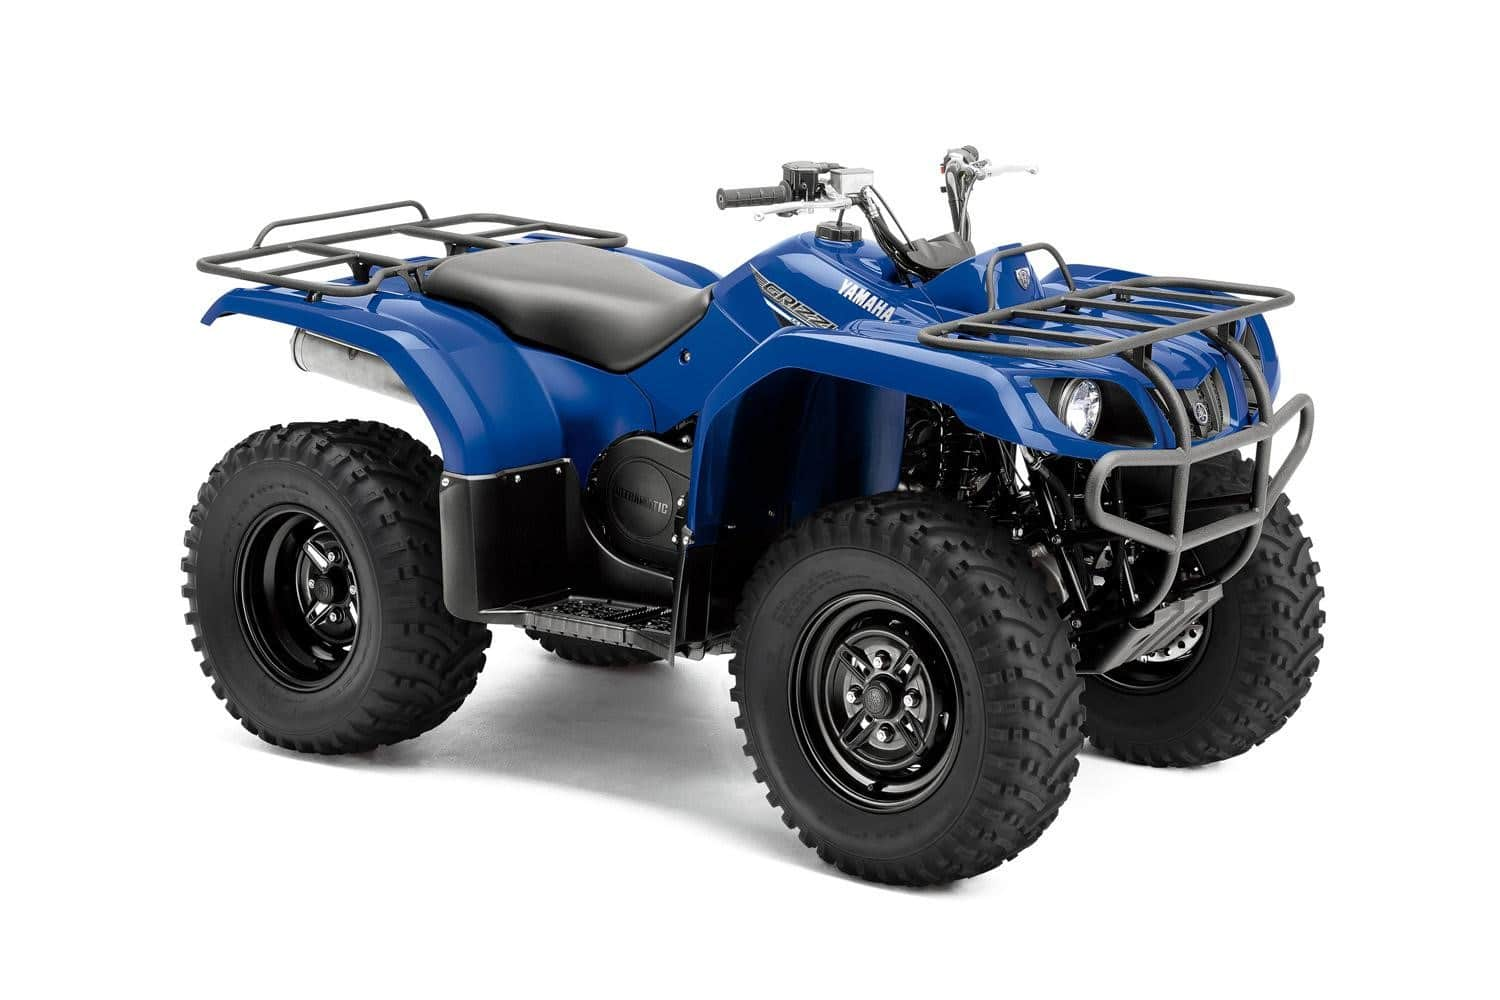 2019-yamaha-grizzly-350fa-quad-dirt-bike-bowral-southernhighlands